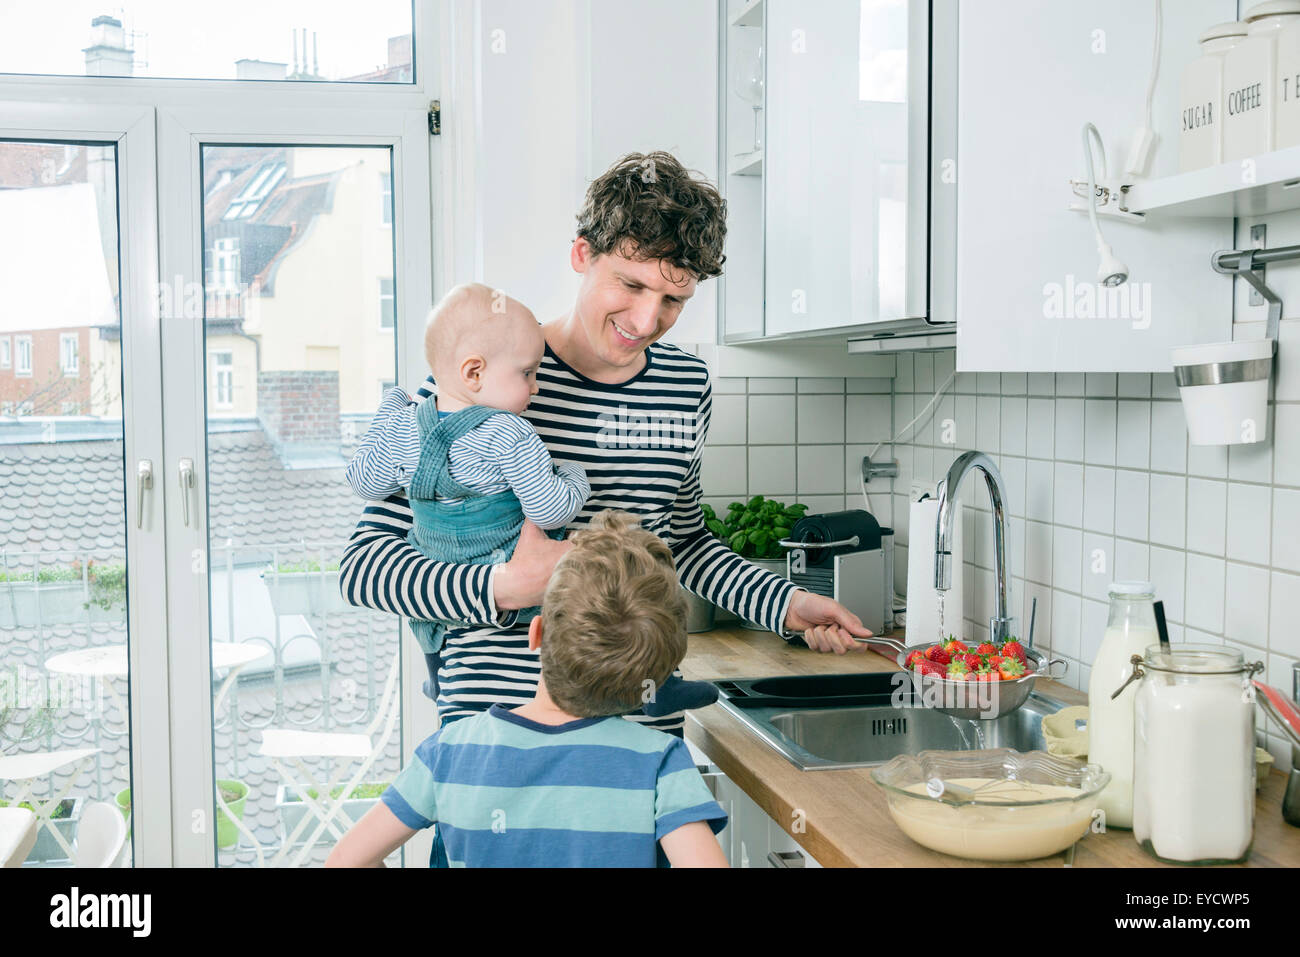 Father prepares food while holding baby in kitchen - Stock Image